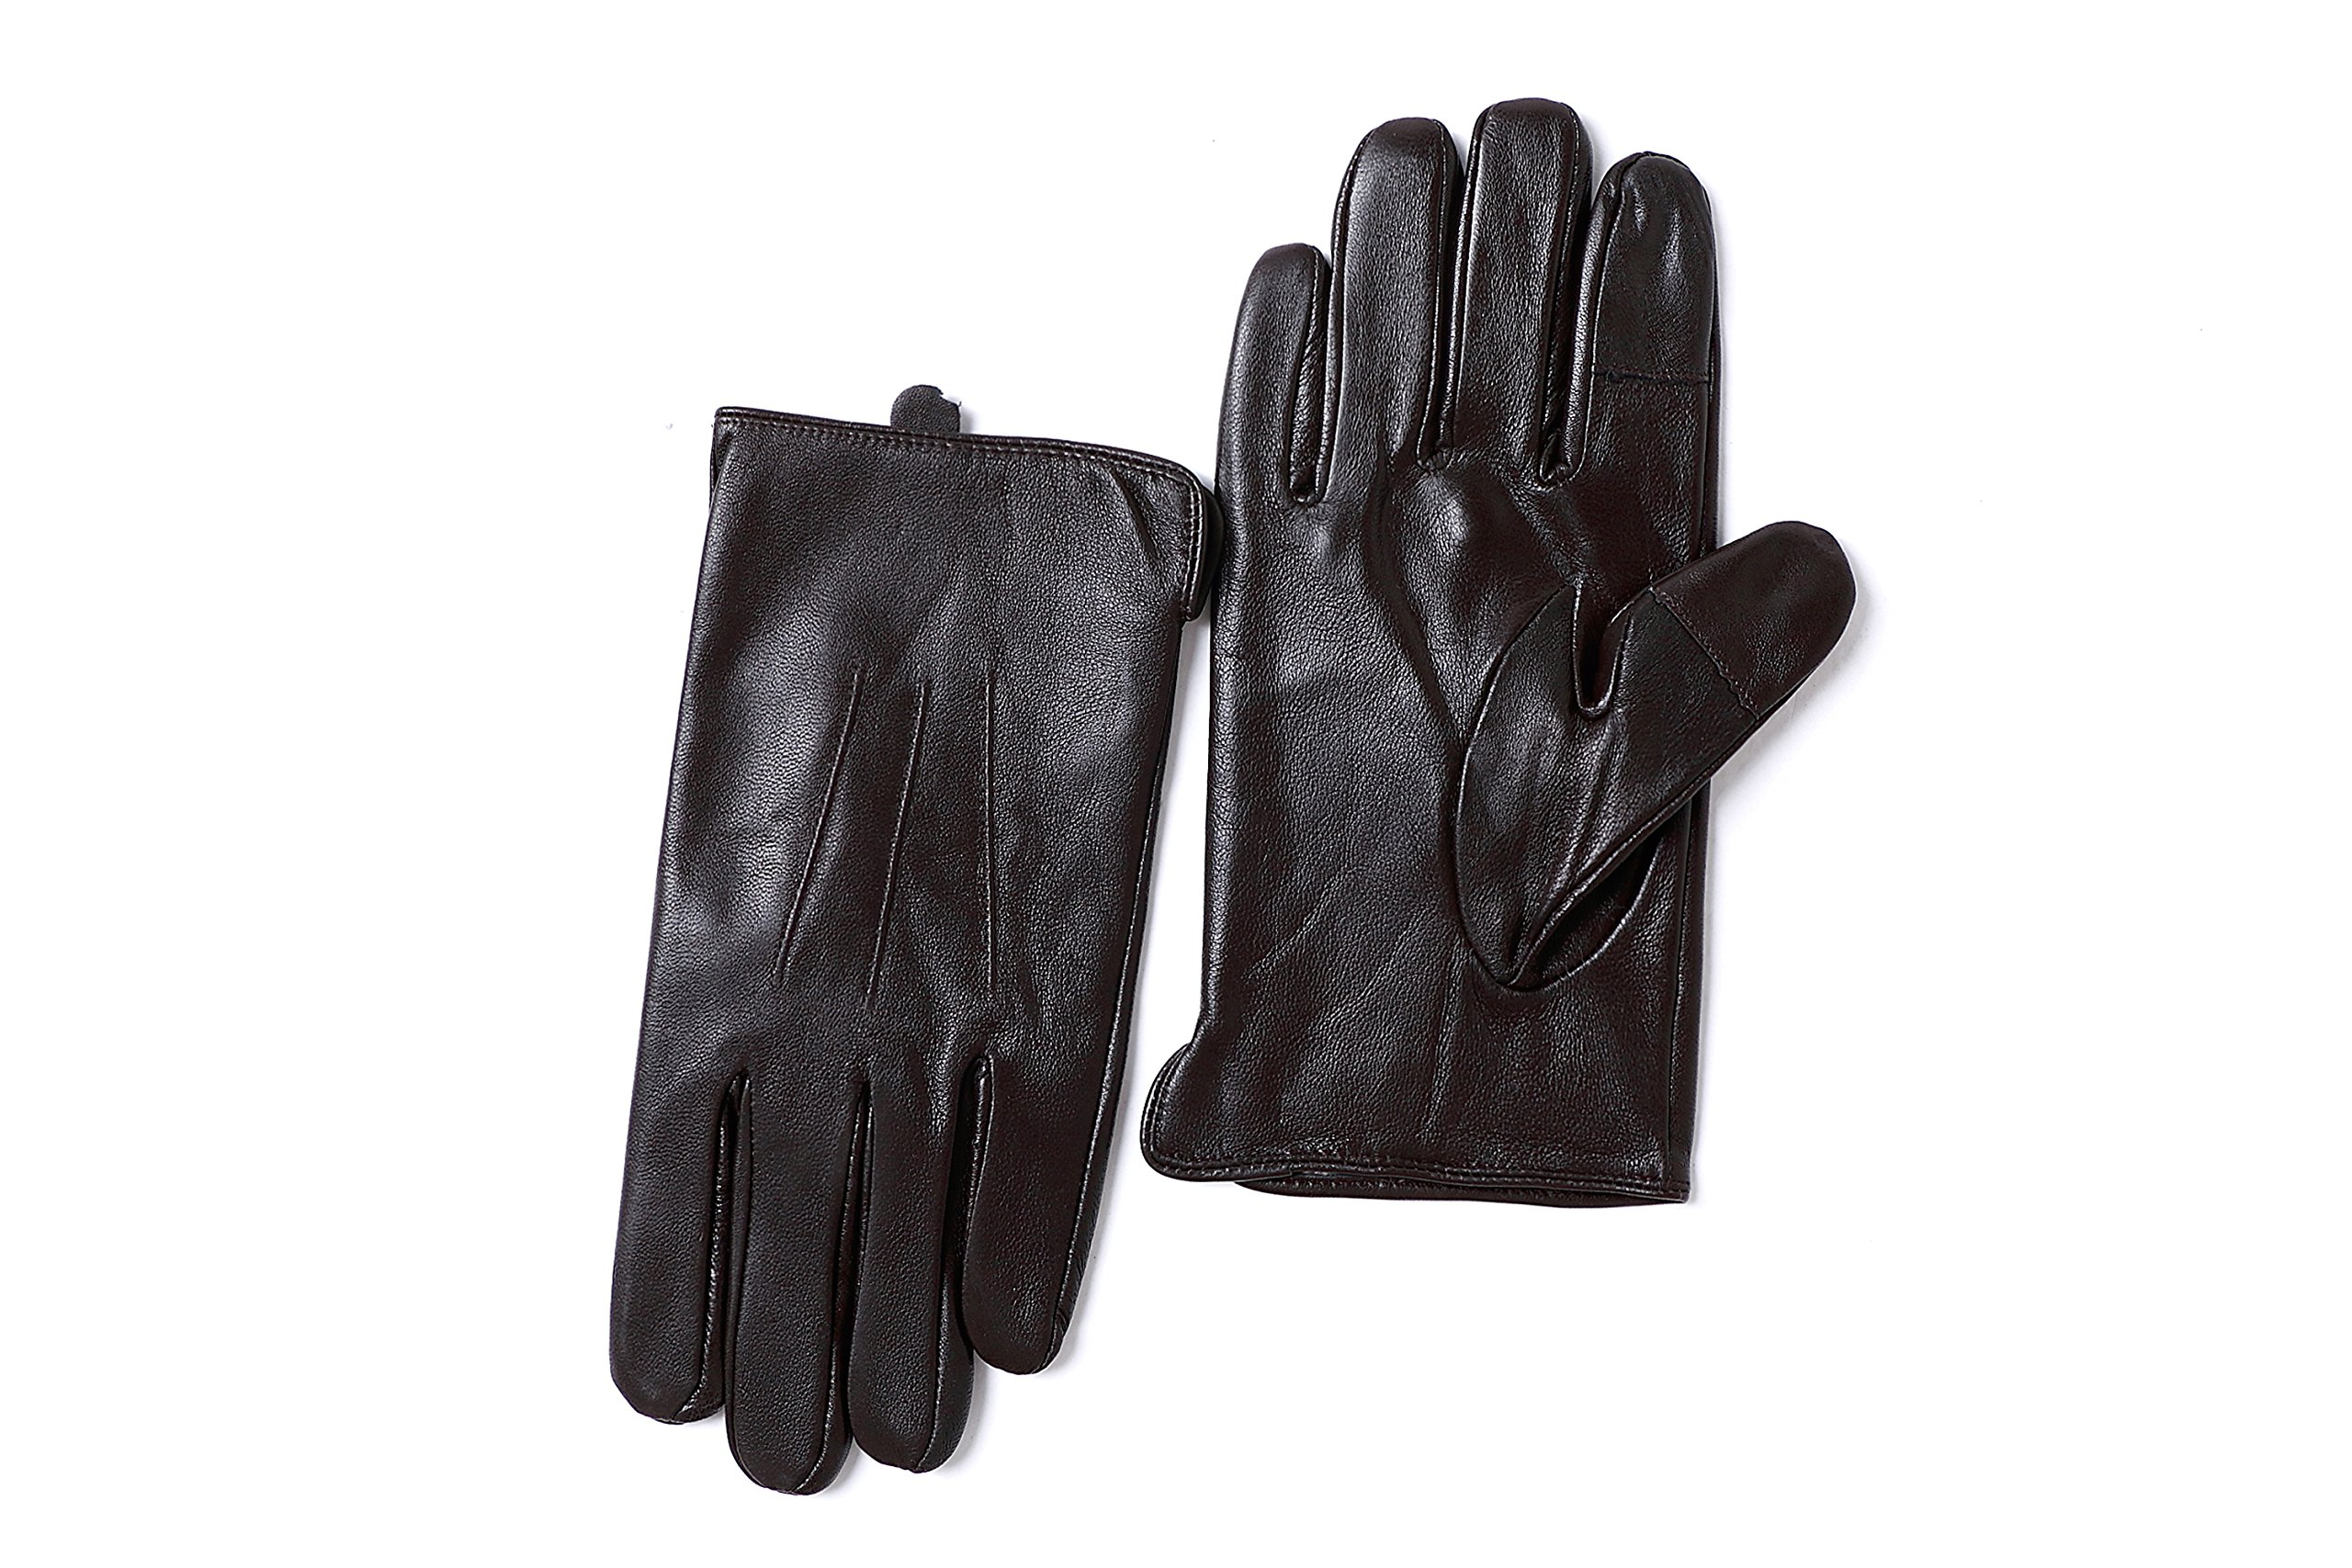 YISEVEN Men's Sheepskin Leather Gloves Three Points Wool Lined Real Luxury Design Soft Hand Warm Fur Heated Lining for Winter Stylish Dress Work Xmas Gift and Motorcycle Driving, Brown 095/Large by YISEVEN (Image #5)